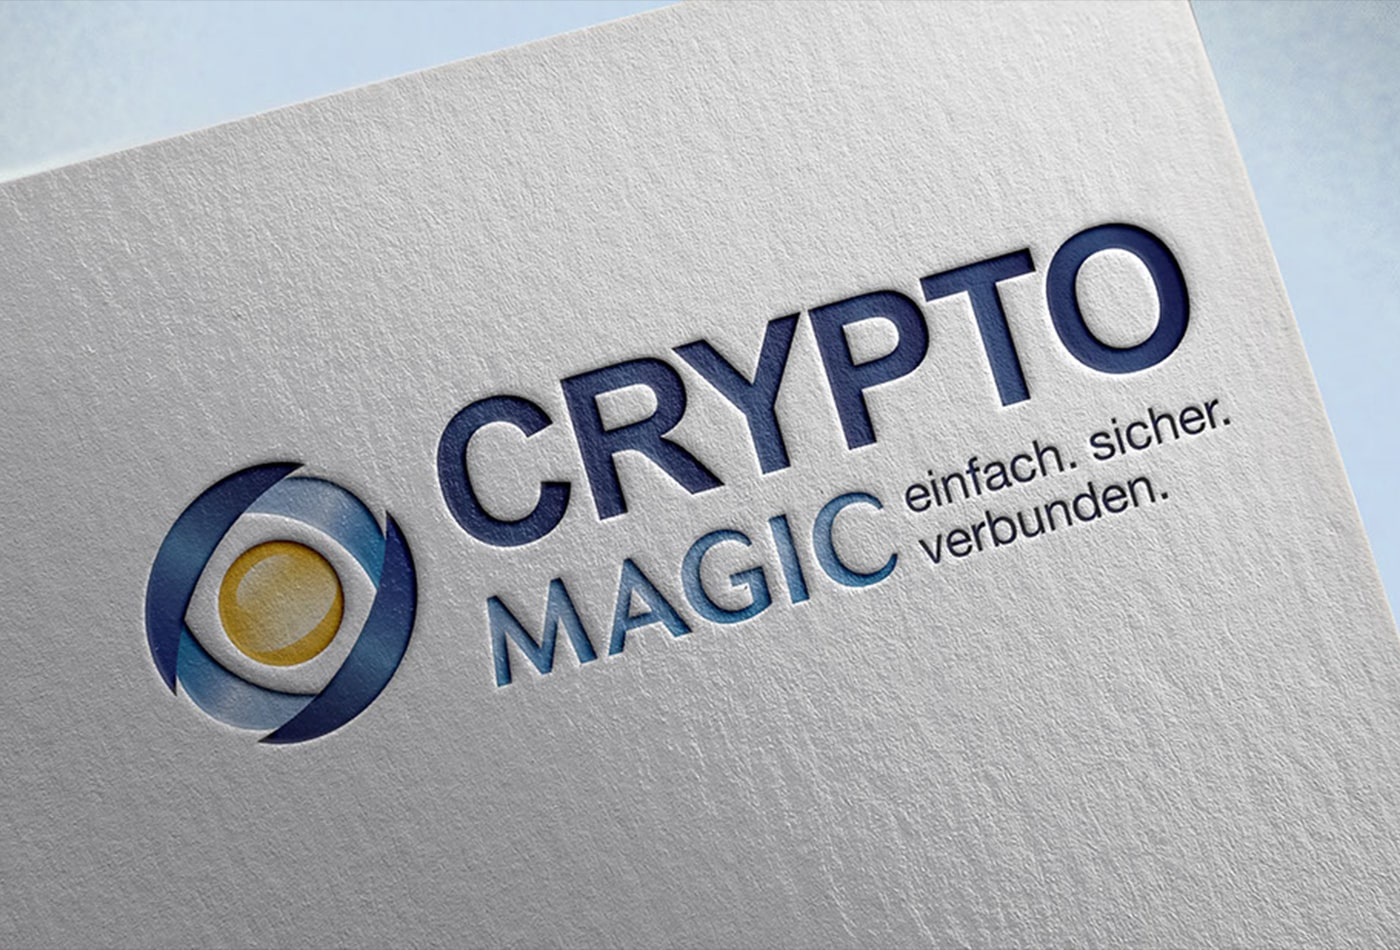 Crypto Magic Logoentwicklung